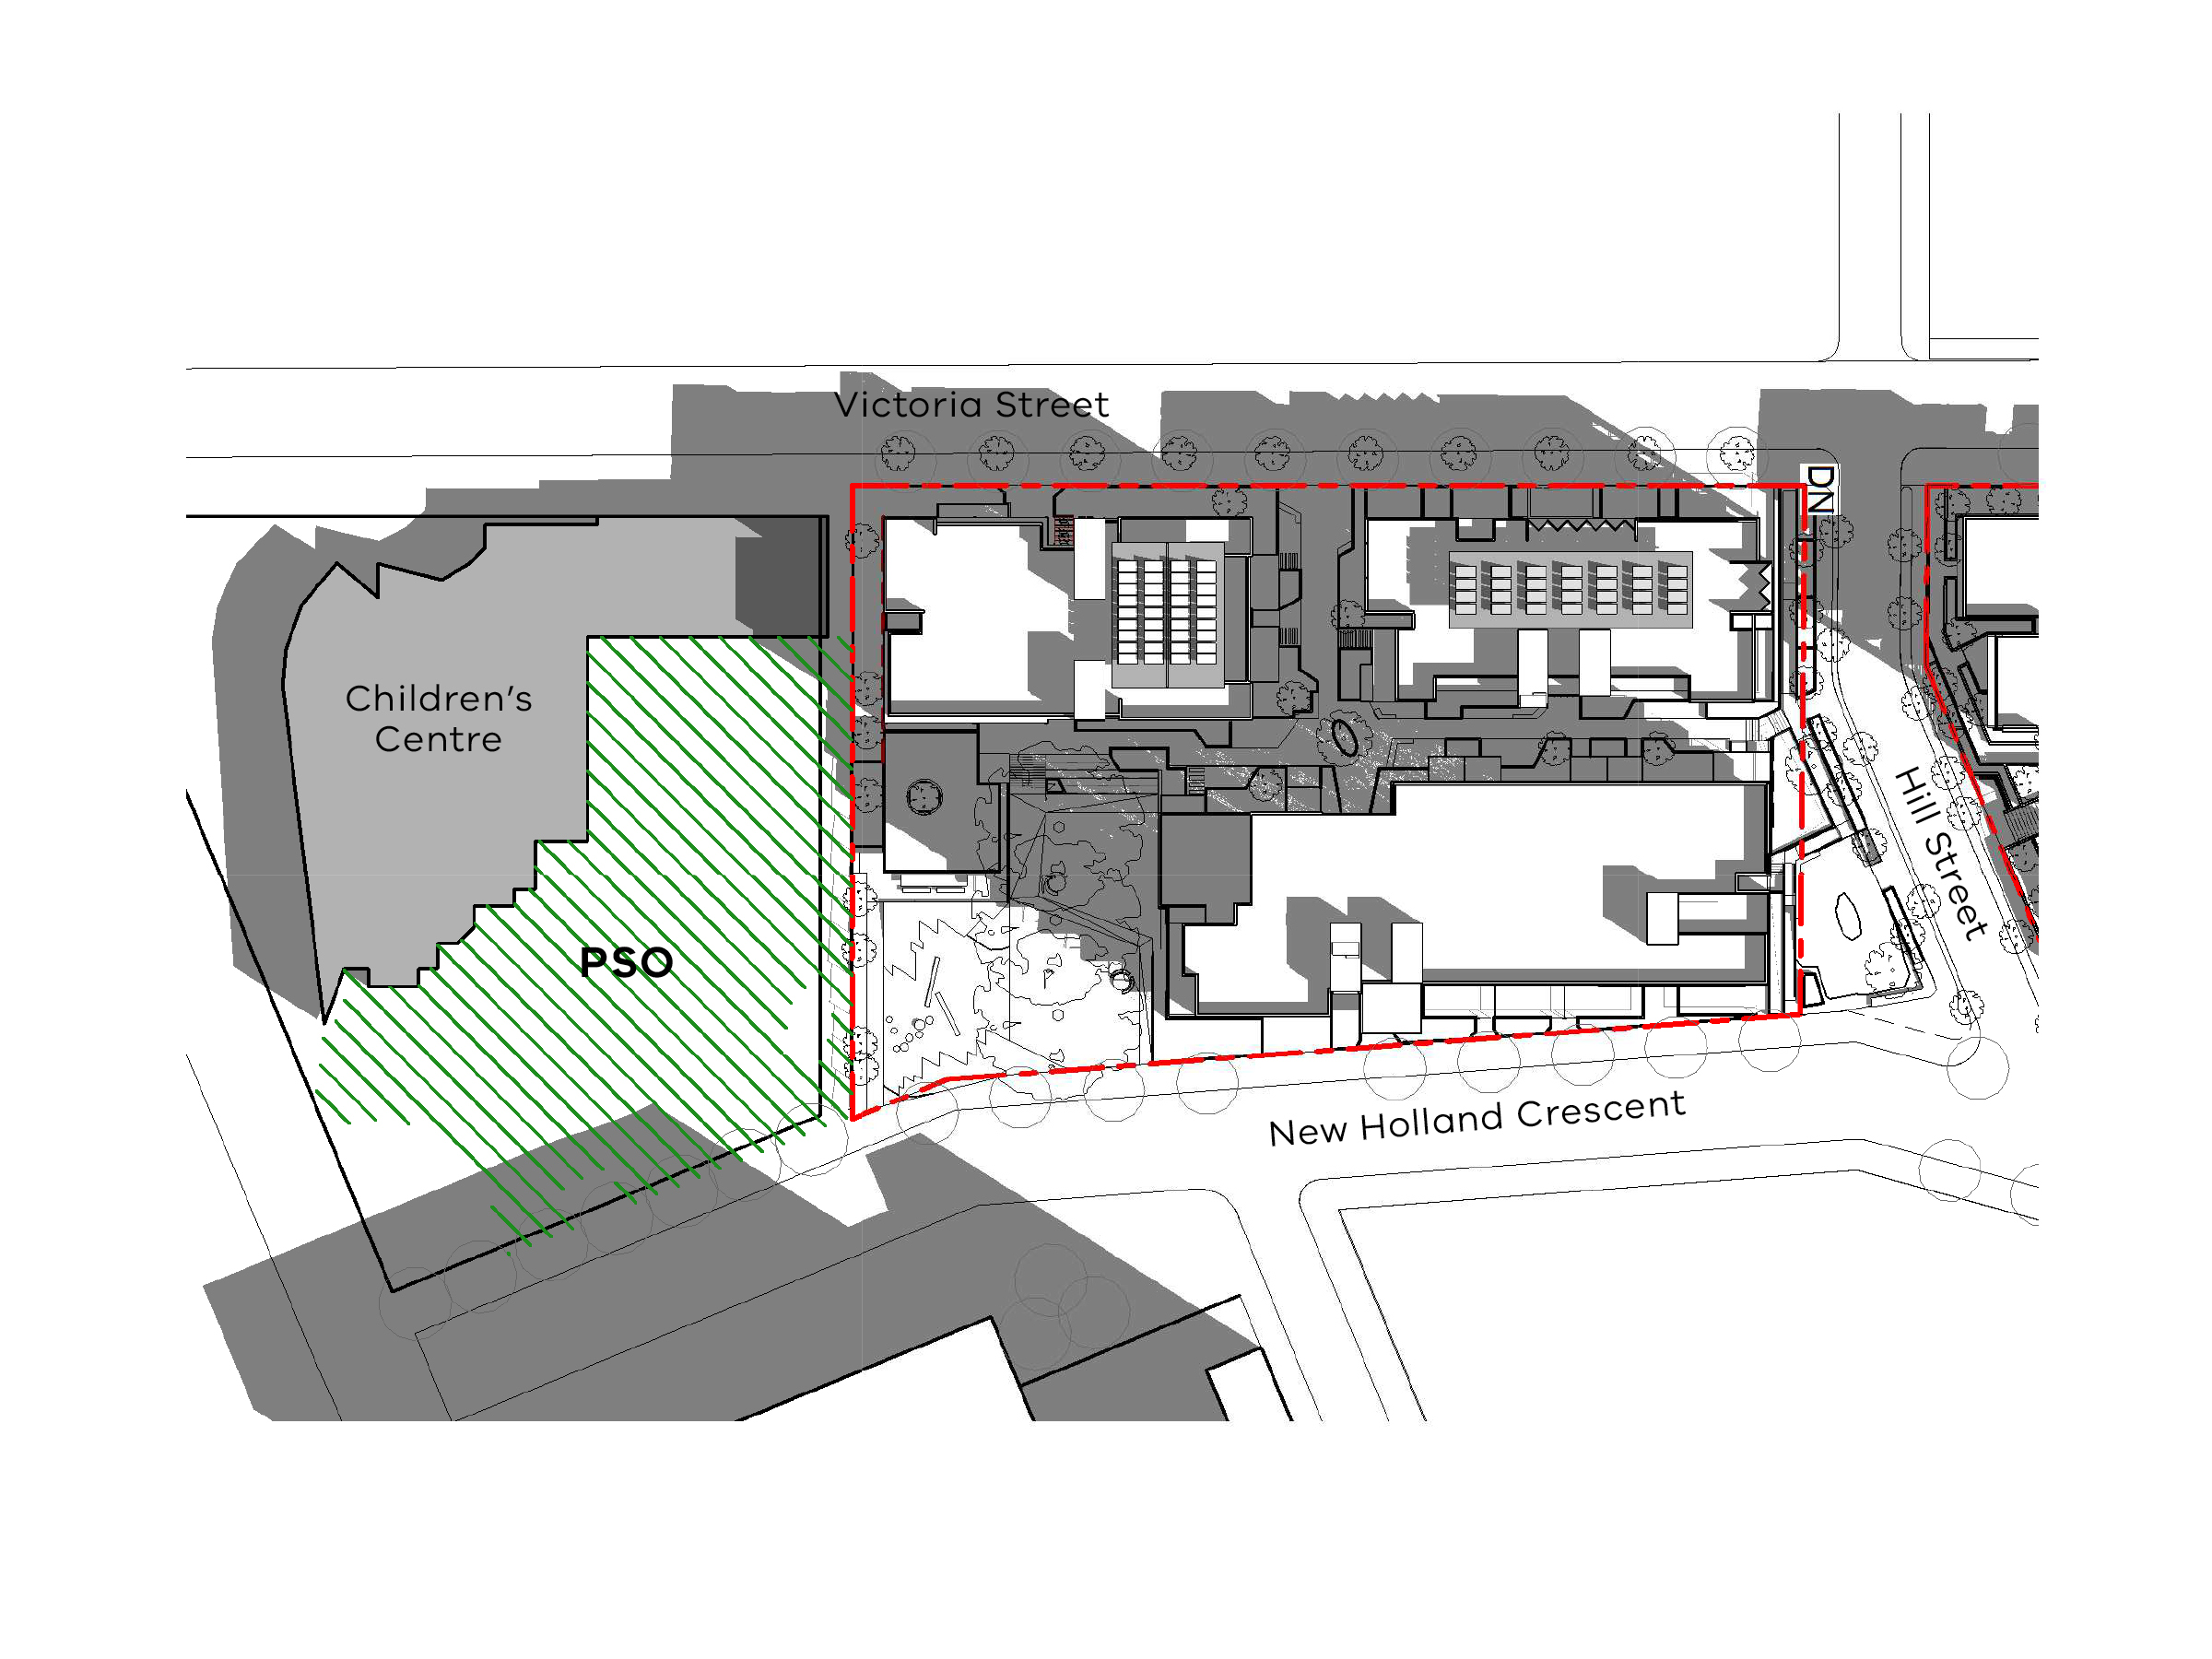 Diagram showing the shadows created by the south site of the new development in September at 9am